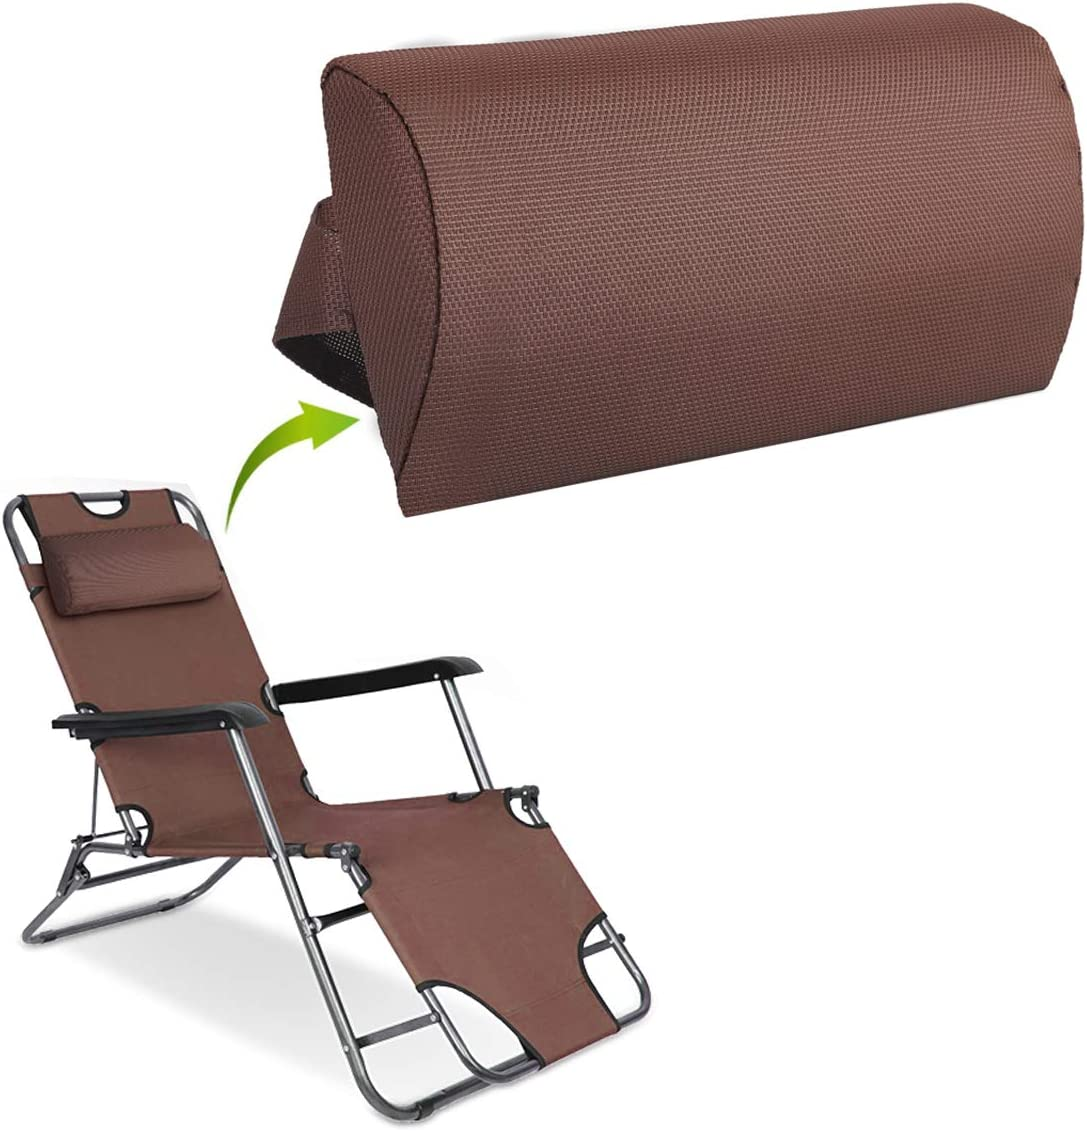 Removable Padded Headrest Pillow for Folding Zero Gravity Lounge Chair